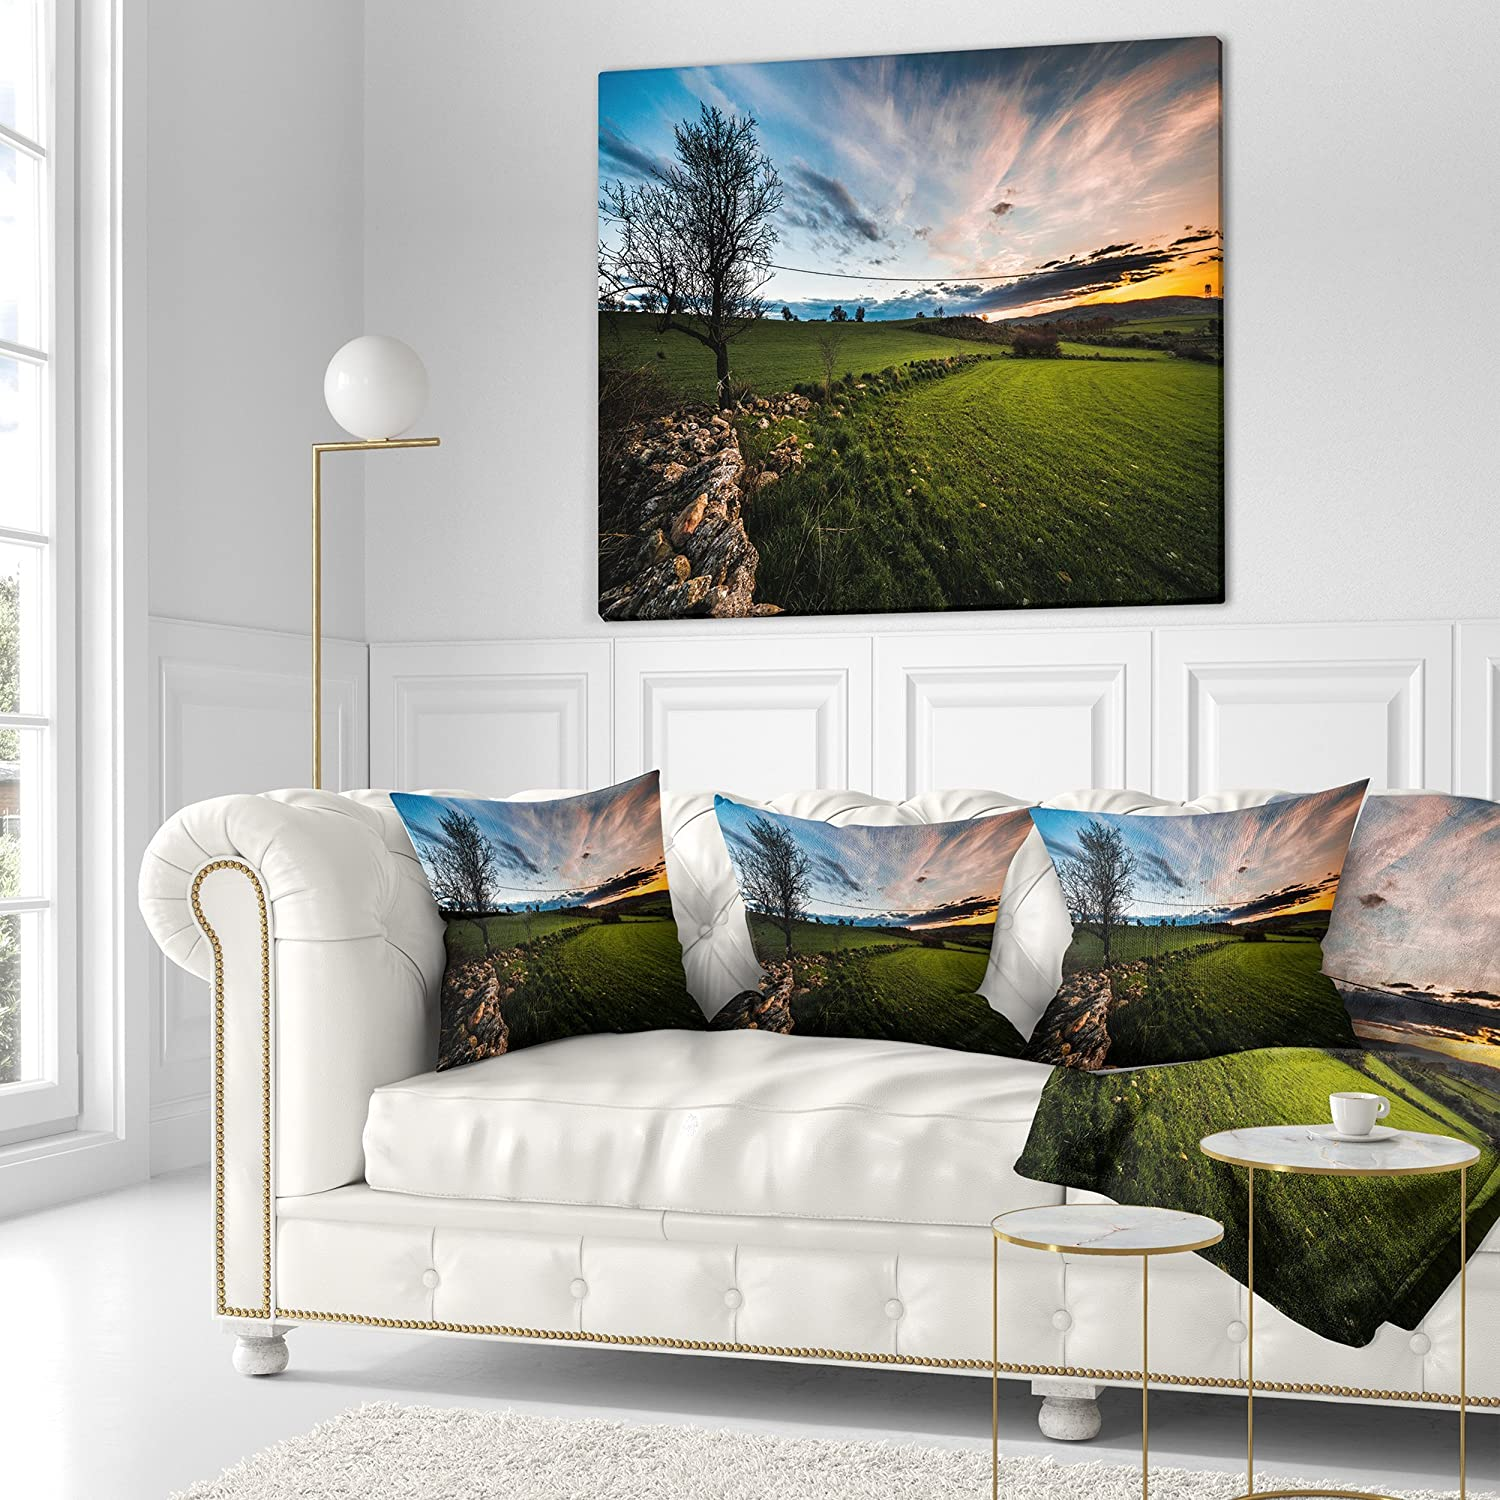 Designart CU14307-18-18 Beautiful Green Meadow in Sardinia Landscape Printed Cushion Cover for Living Room Sofa Throw Pillow 18 in in x 18 in